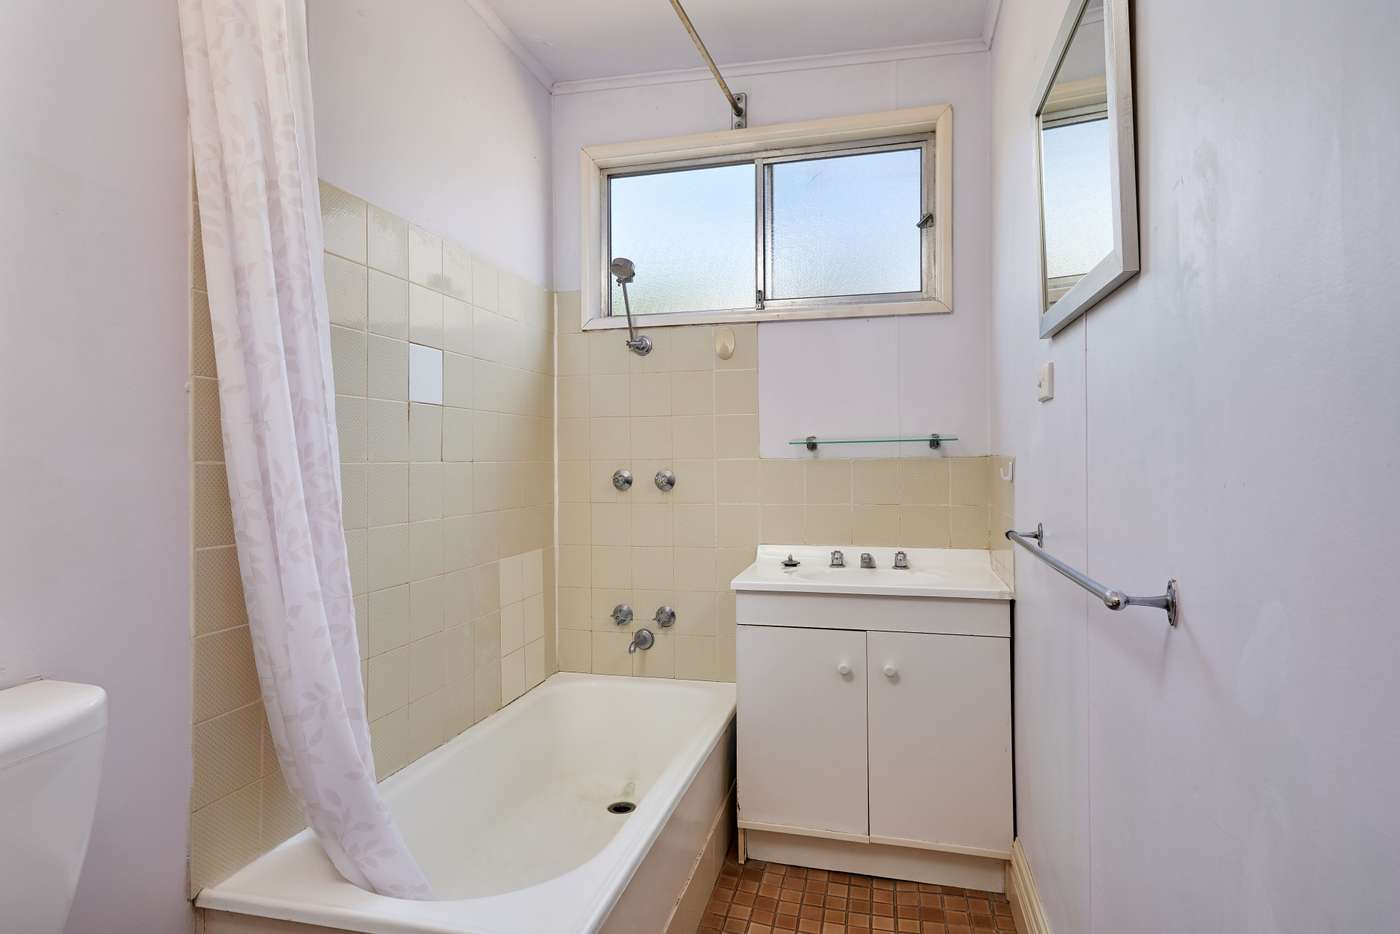 Seventh view of Homely house listing, 3/106 Tompson Street, Wagga Wagga NSW 2650